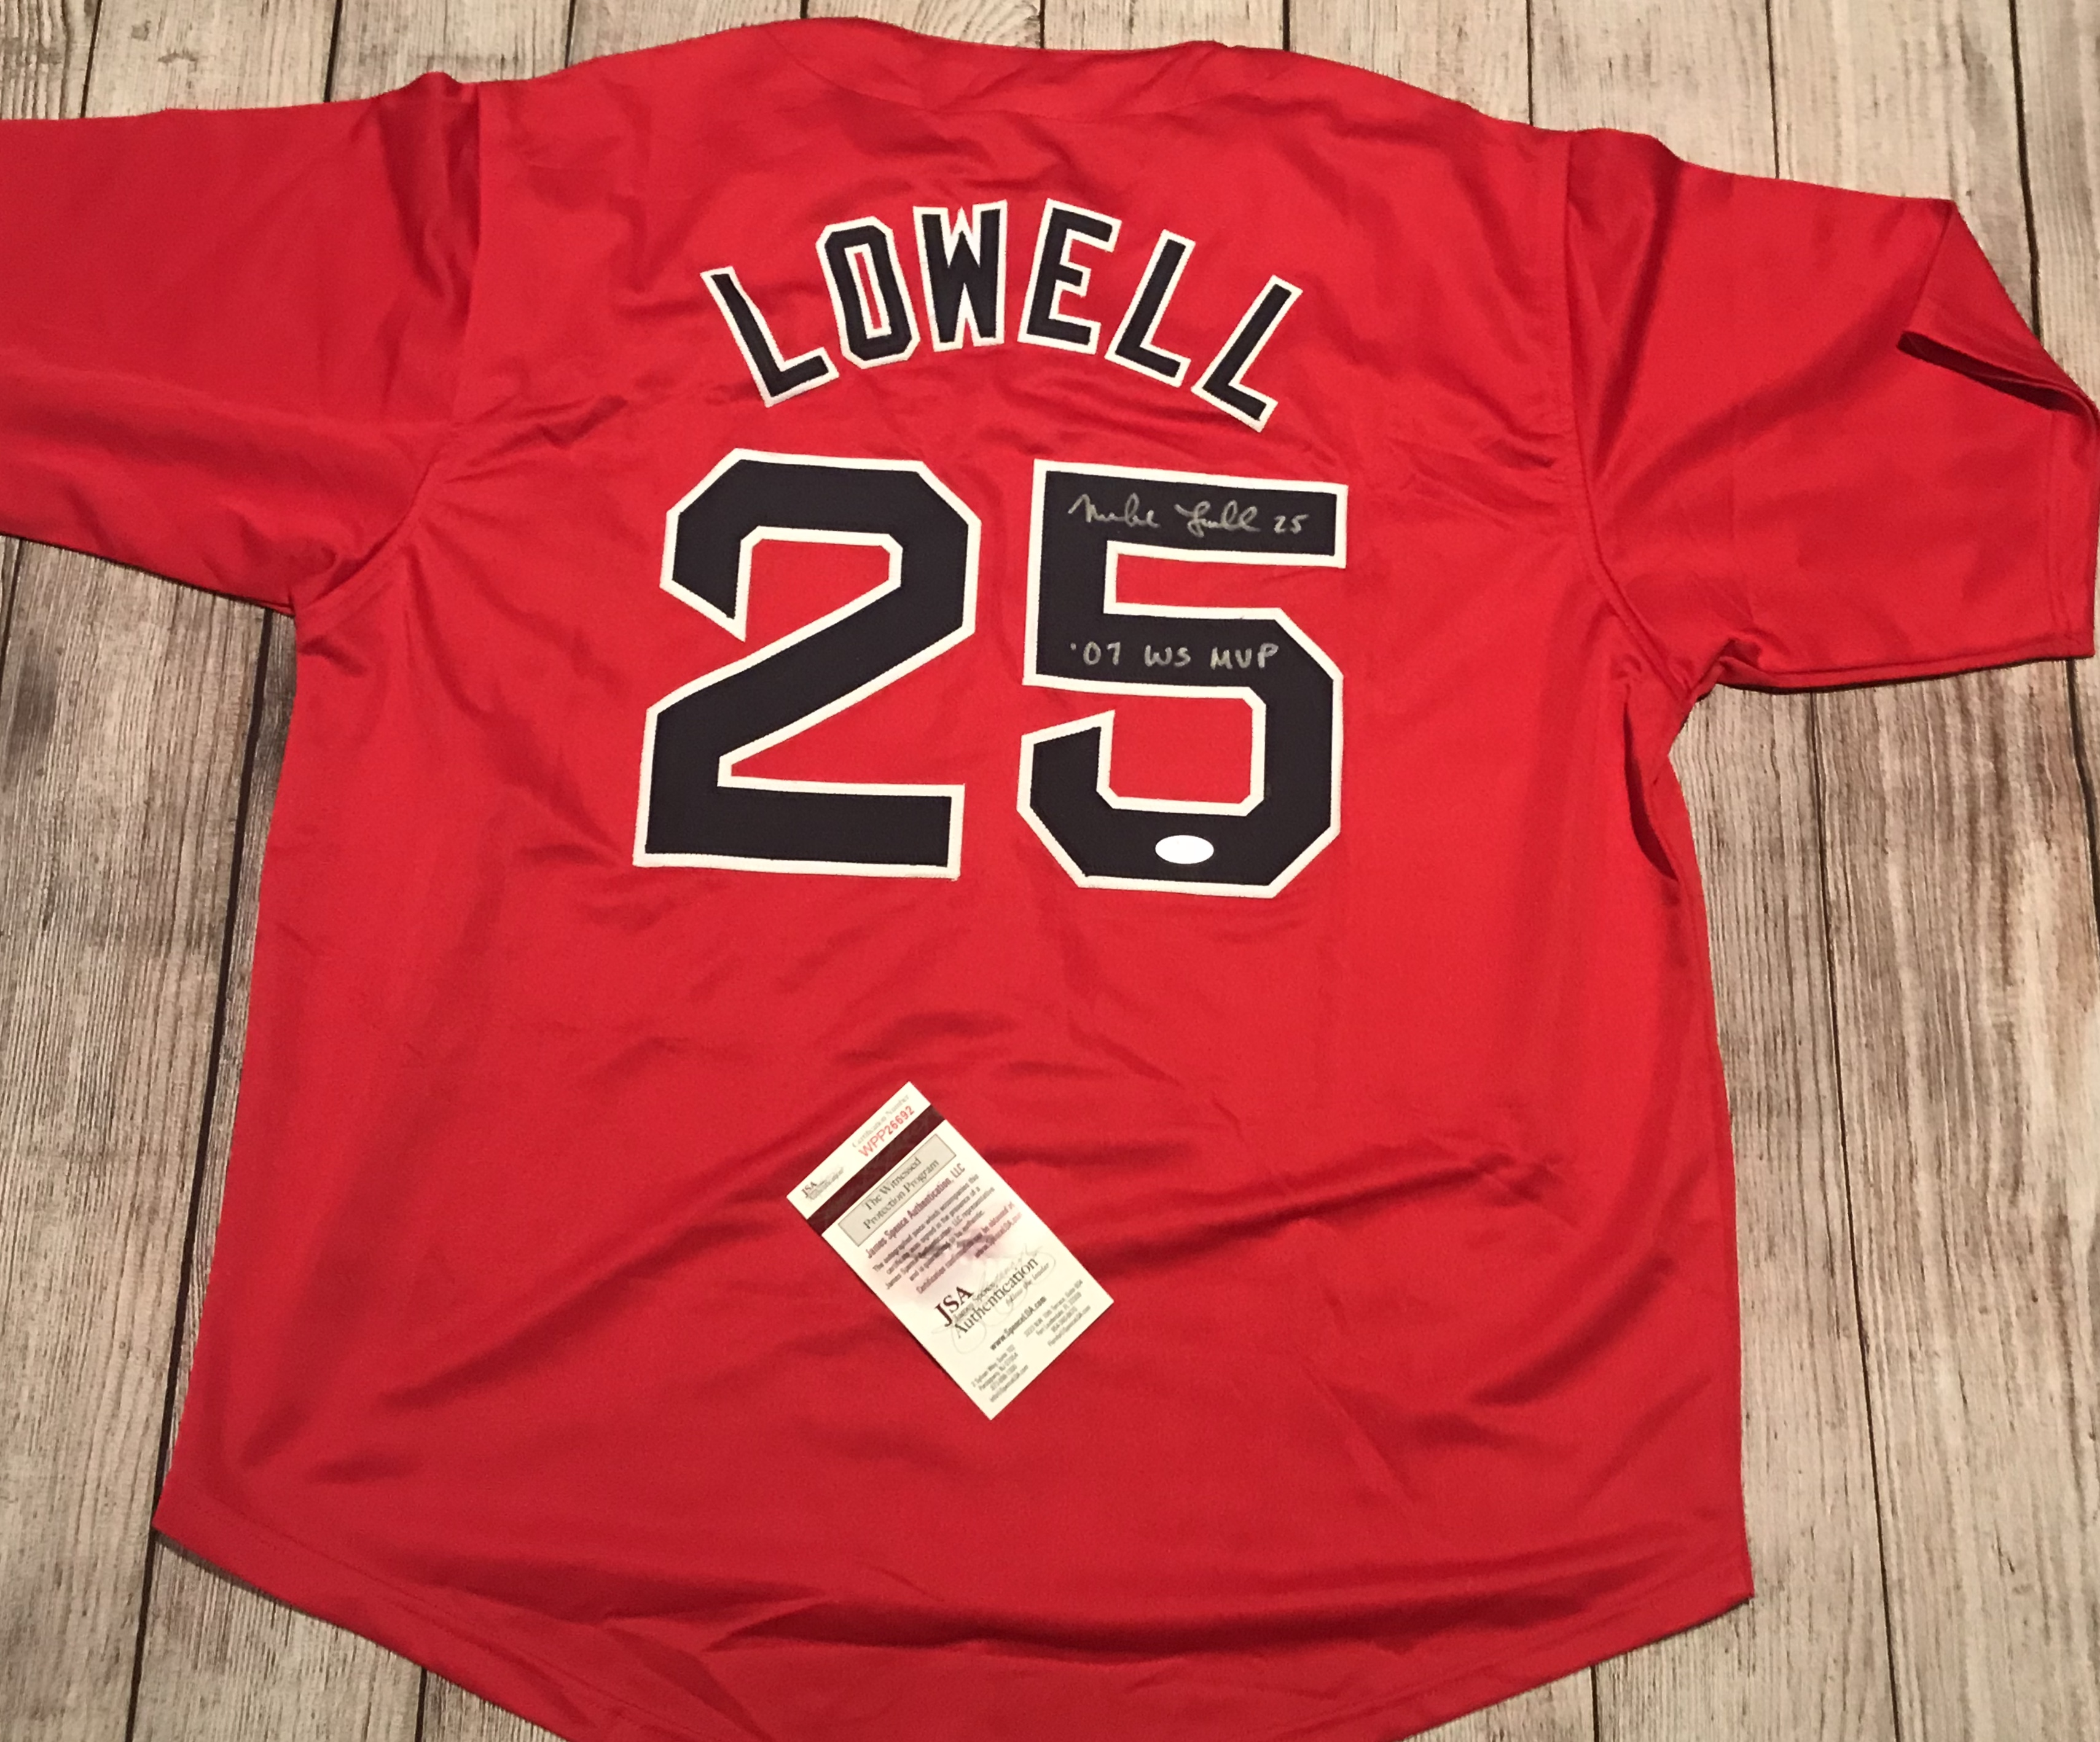 Mike Lowell signed jersey – Perry Sports Legends e8eb812c644